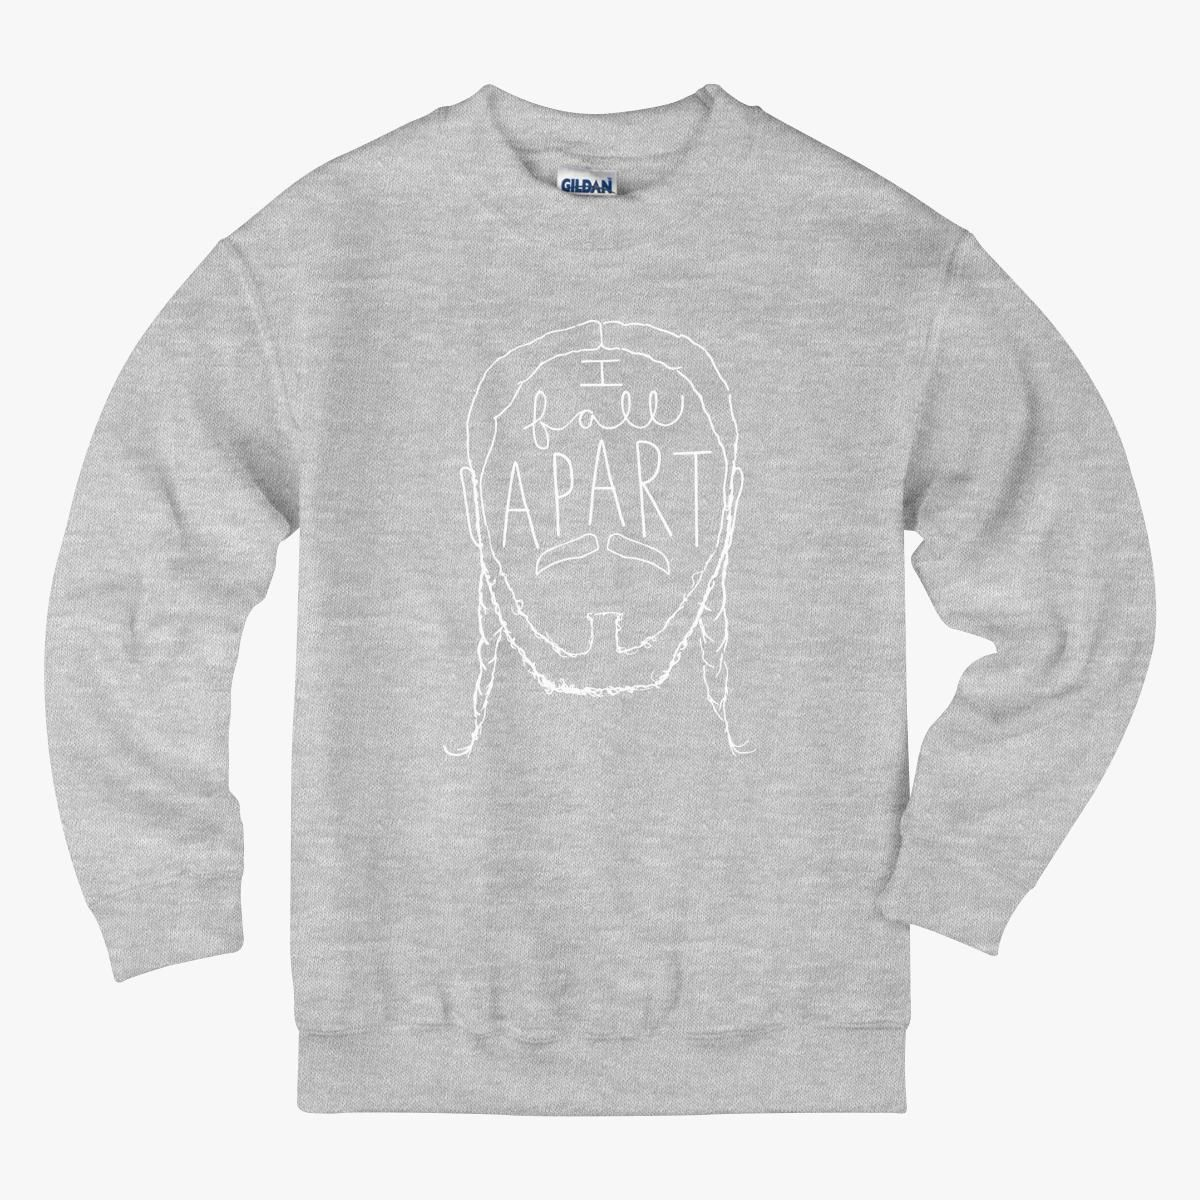 Post Malone I Fall Apart Guitar: Post Malone I Fall Apart Kids Sweatshirt